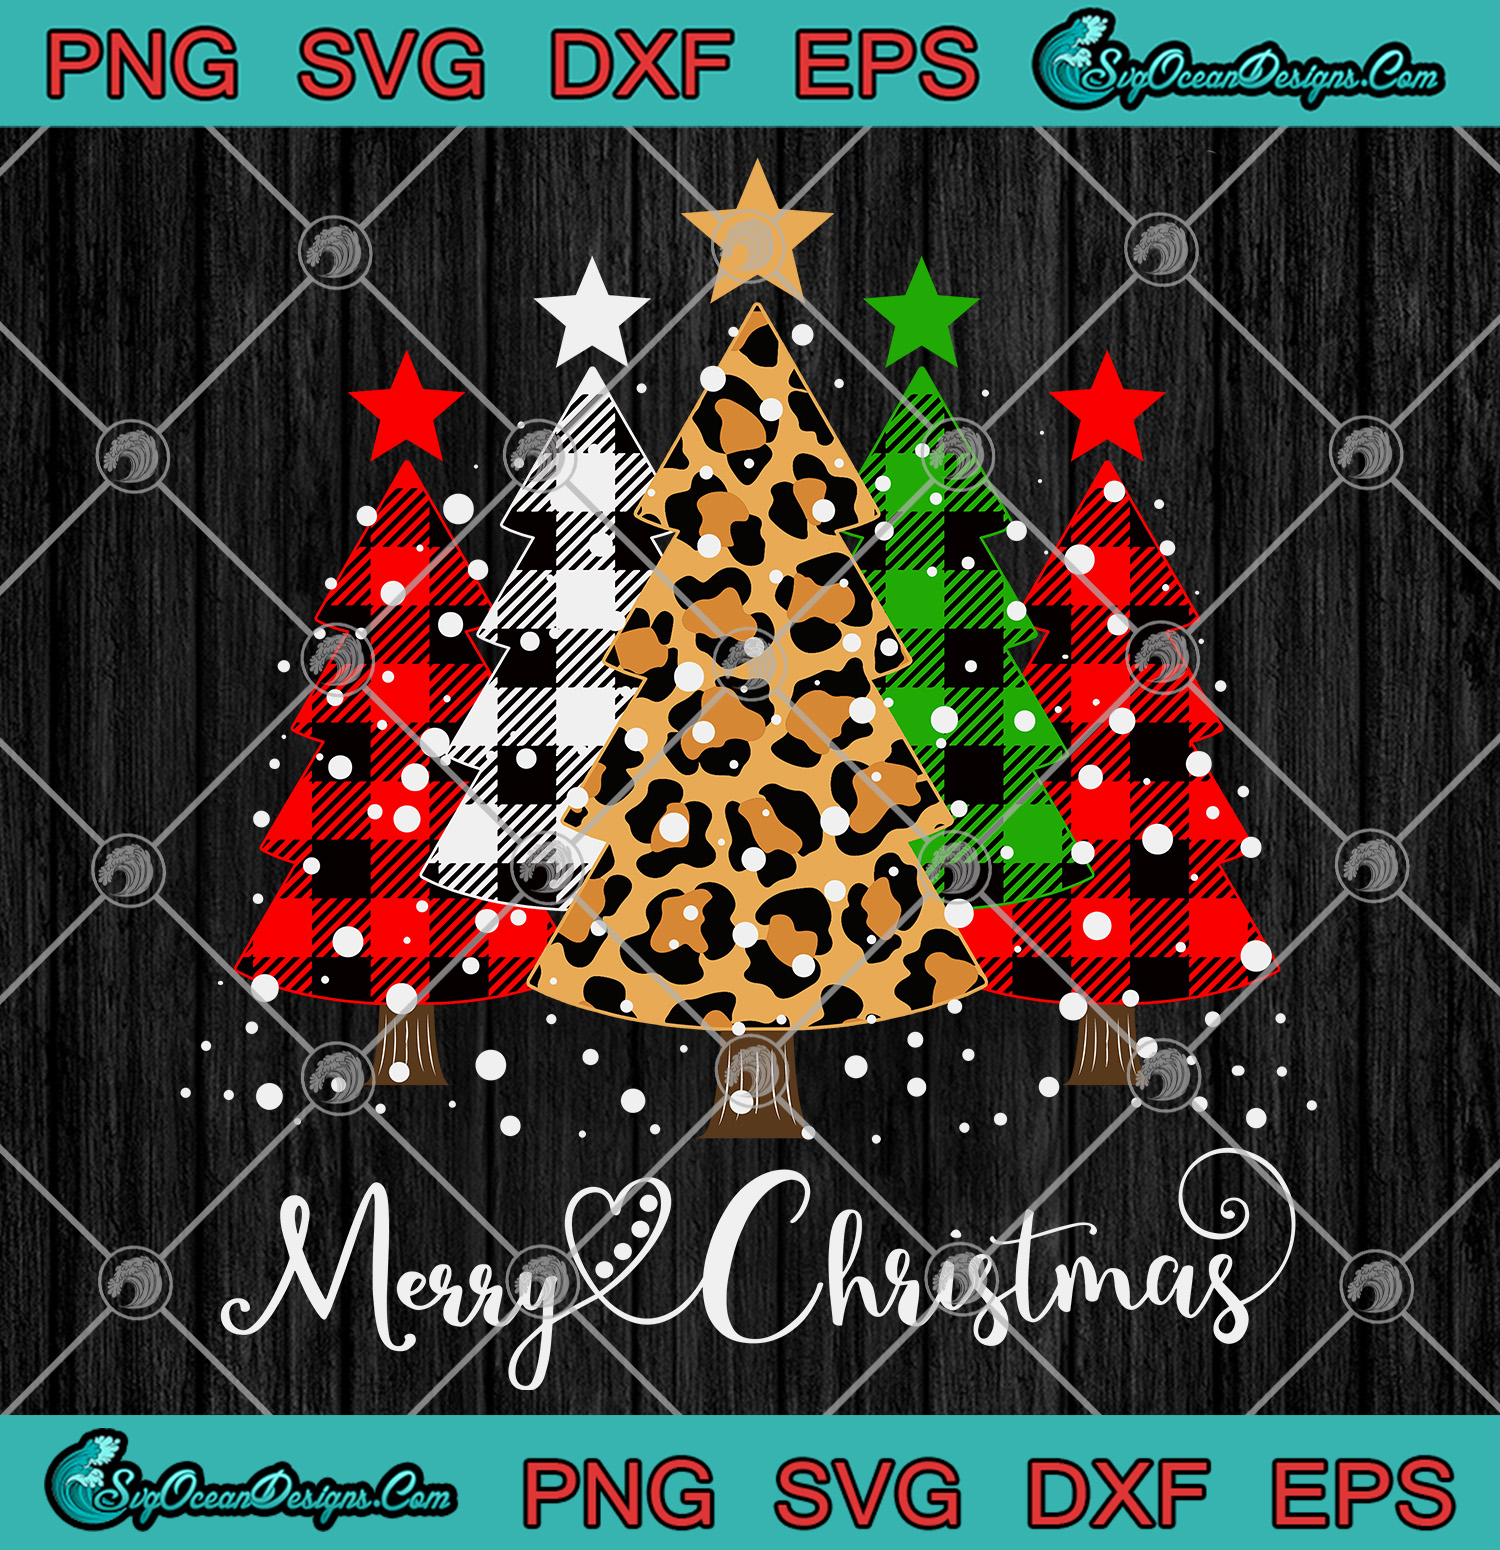 Merry Christmas Trees With Buffalo Plaid Leopard Christmas Svg Png Eps Dxf Cut File Digital Download Designs Digital Download